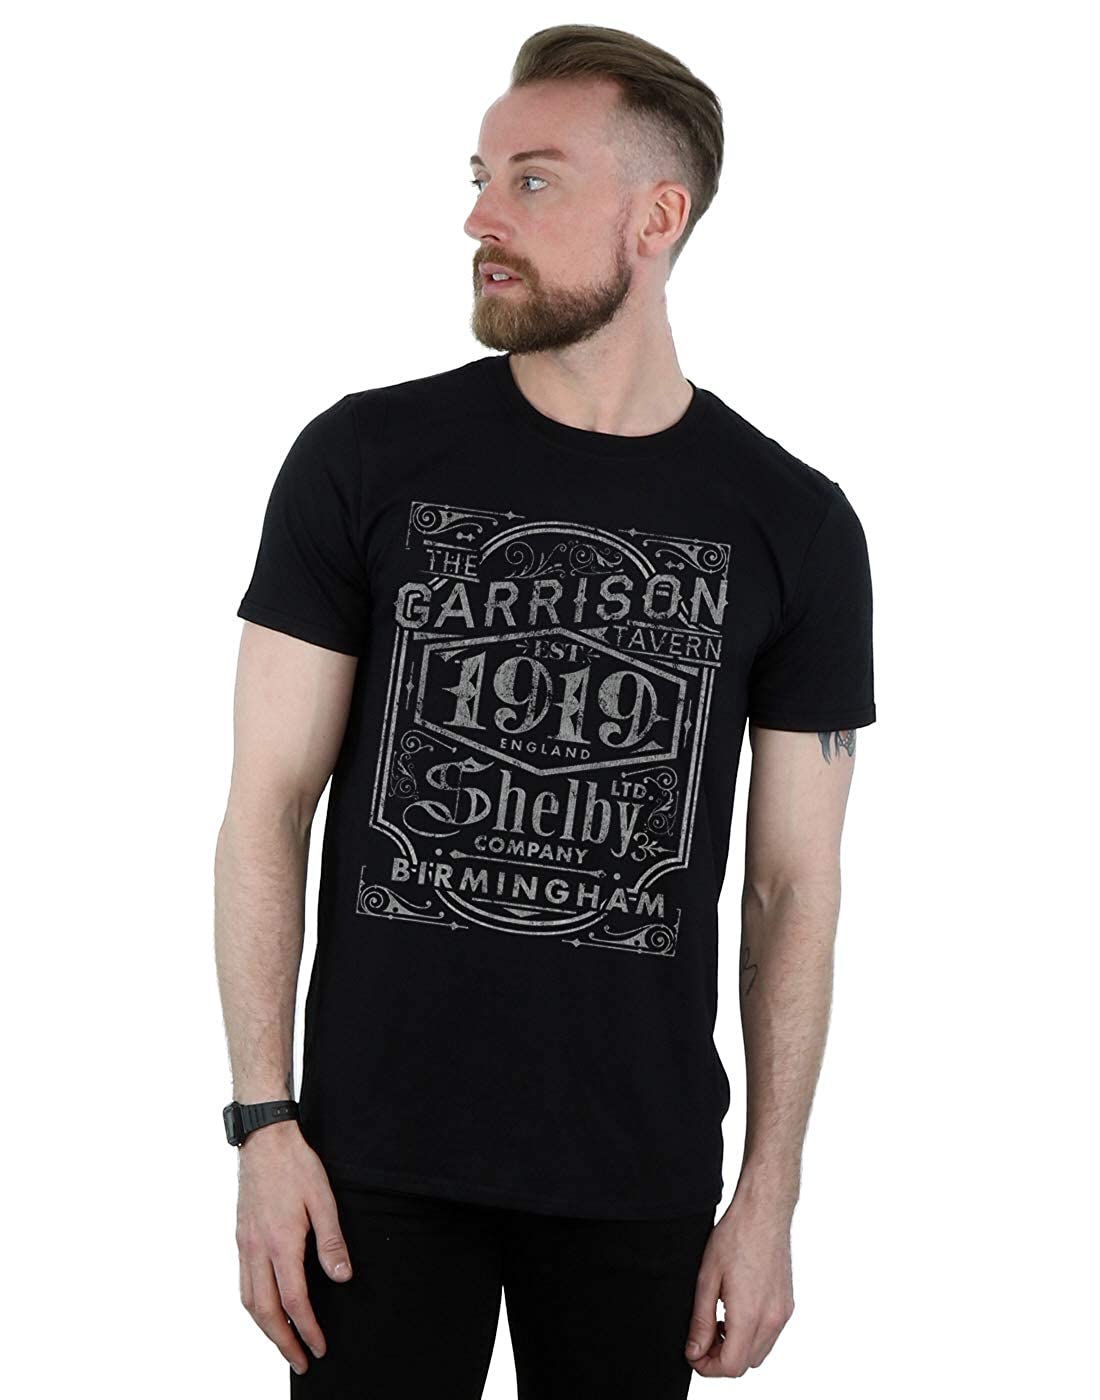 b0f58486dbbdf Absolute Cult Peaky Blinders Men s Garrison Pub T-Shirt Black XX-Large   Amazon